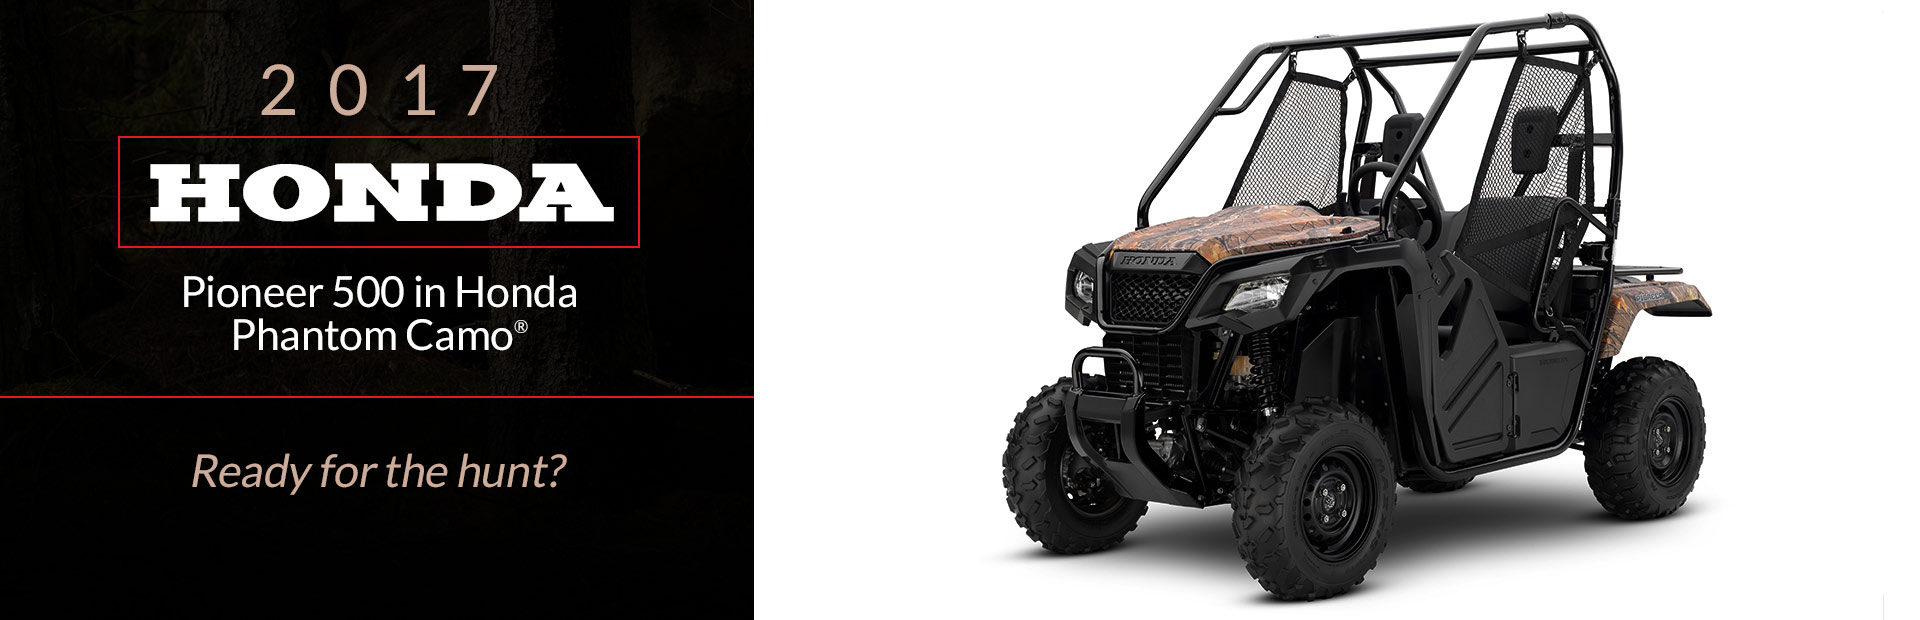 The 2017 Honda Pioneer 500 in Honda Phantom Camo®: Click here for details.